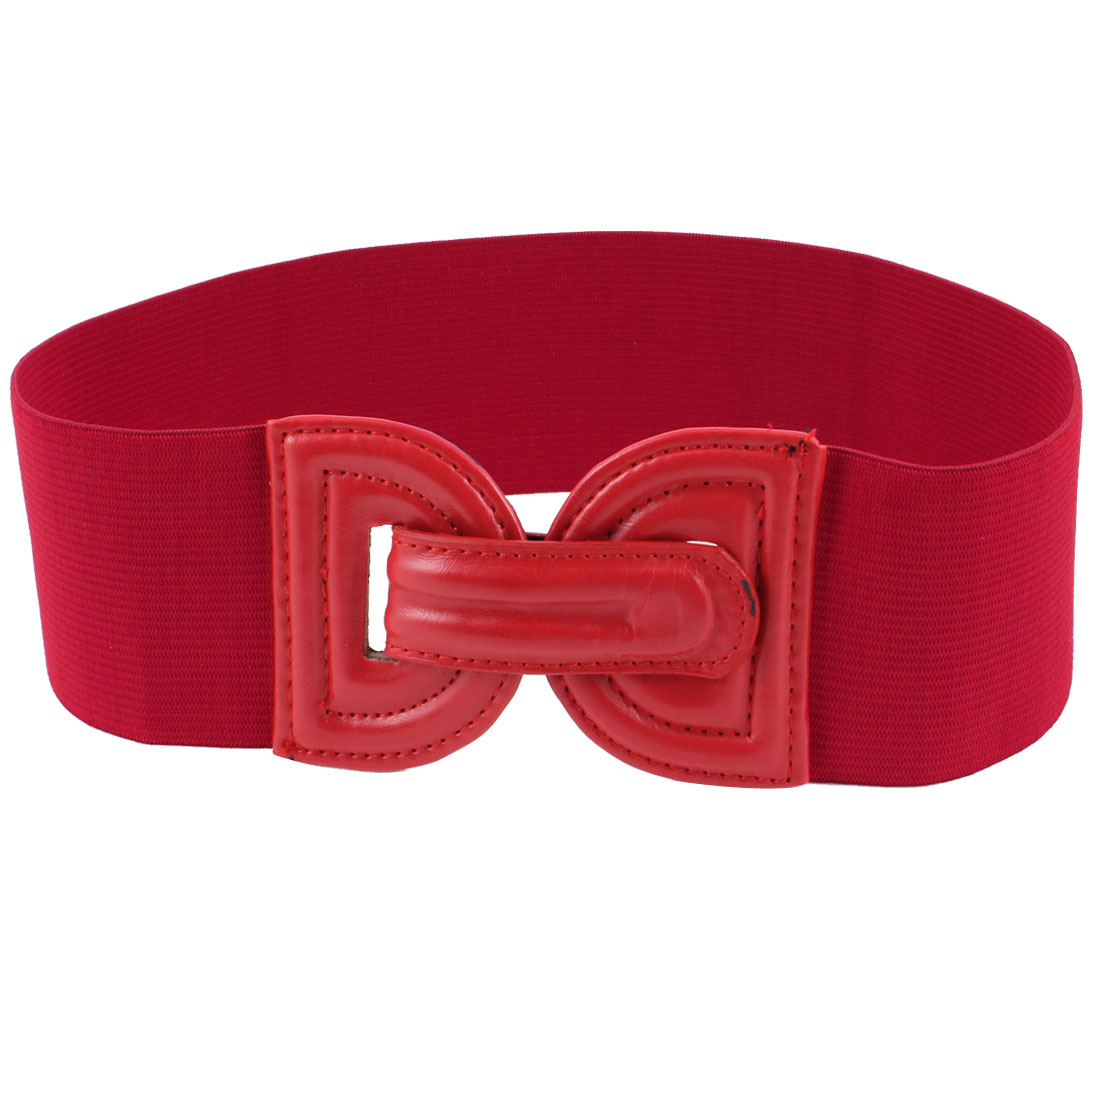 Women Lady Press Stud Button 7cm Width Stretch Waist Belt Red